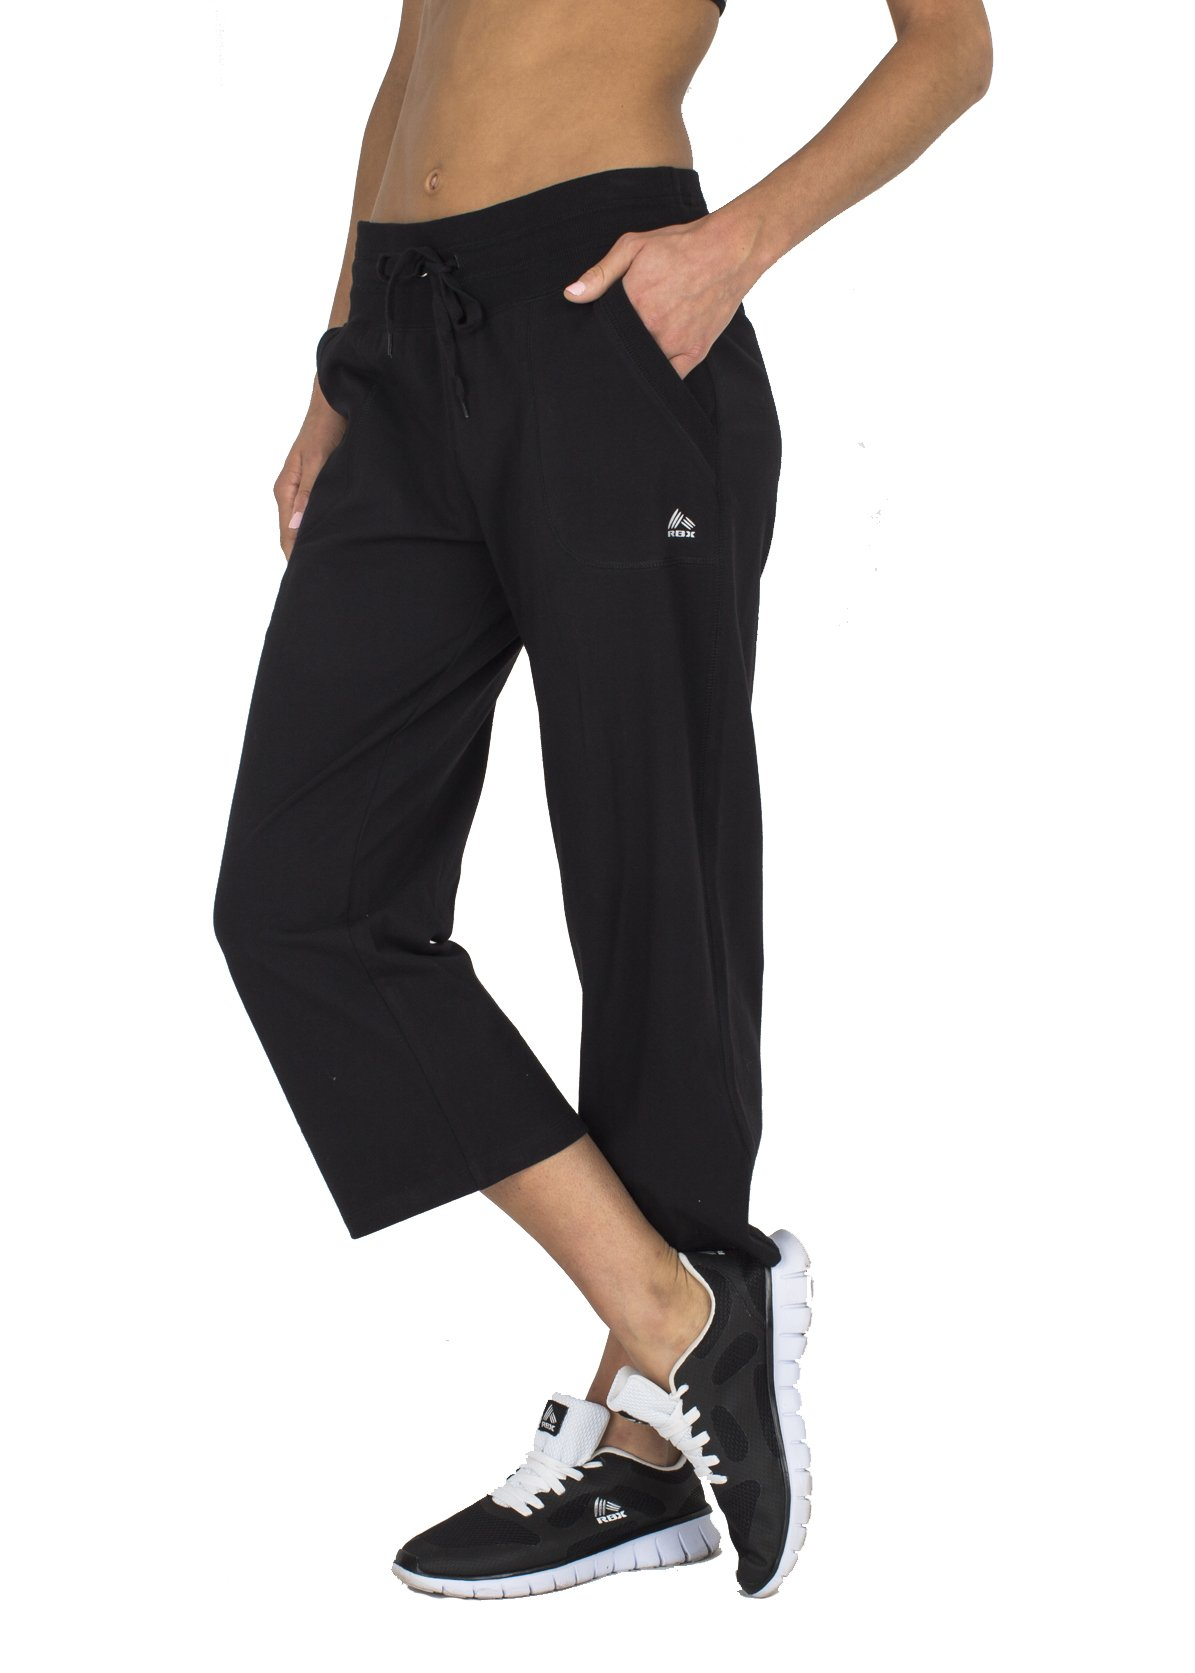 RBX Active Women's Relaxed Fit Cotton Capri Pant w/ Dual Pockets,Black,Small